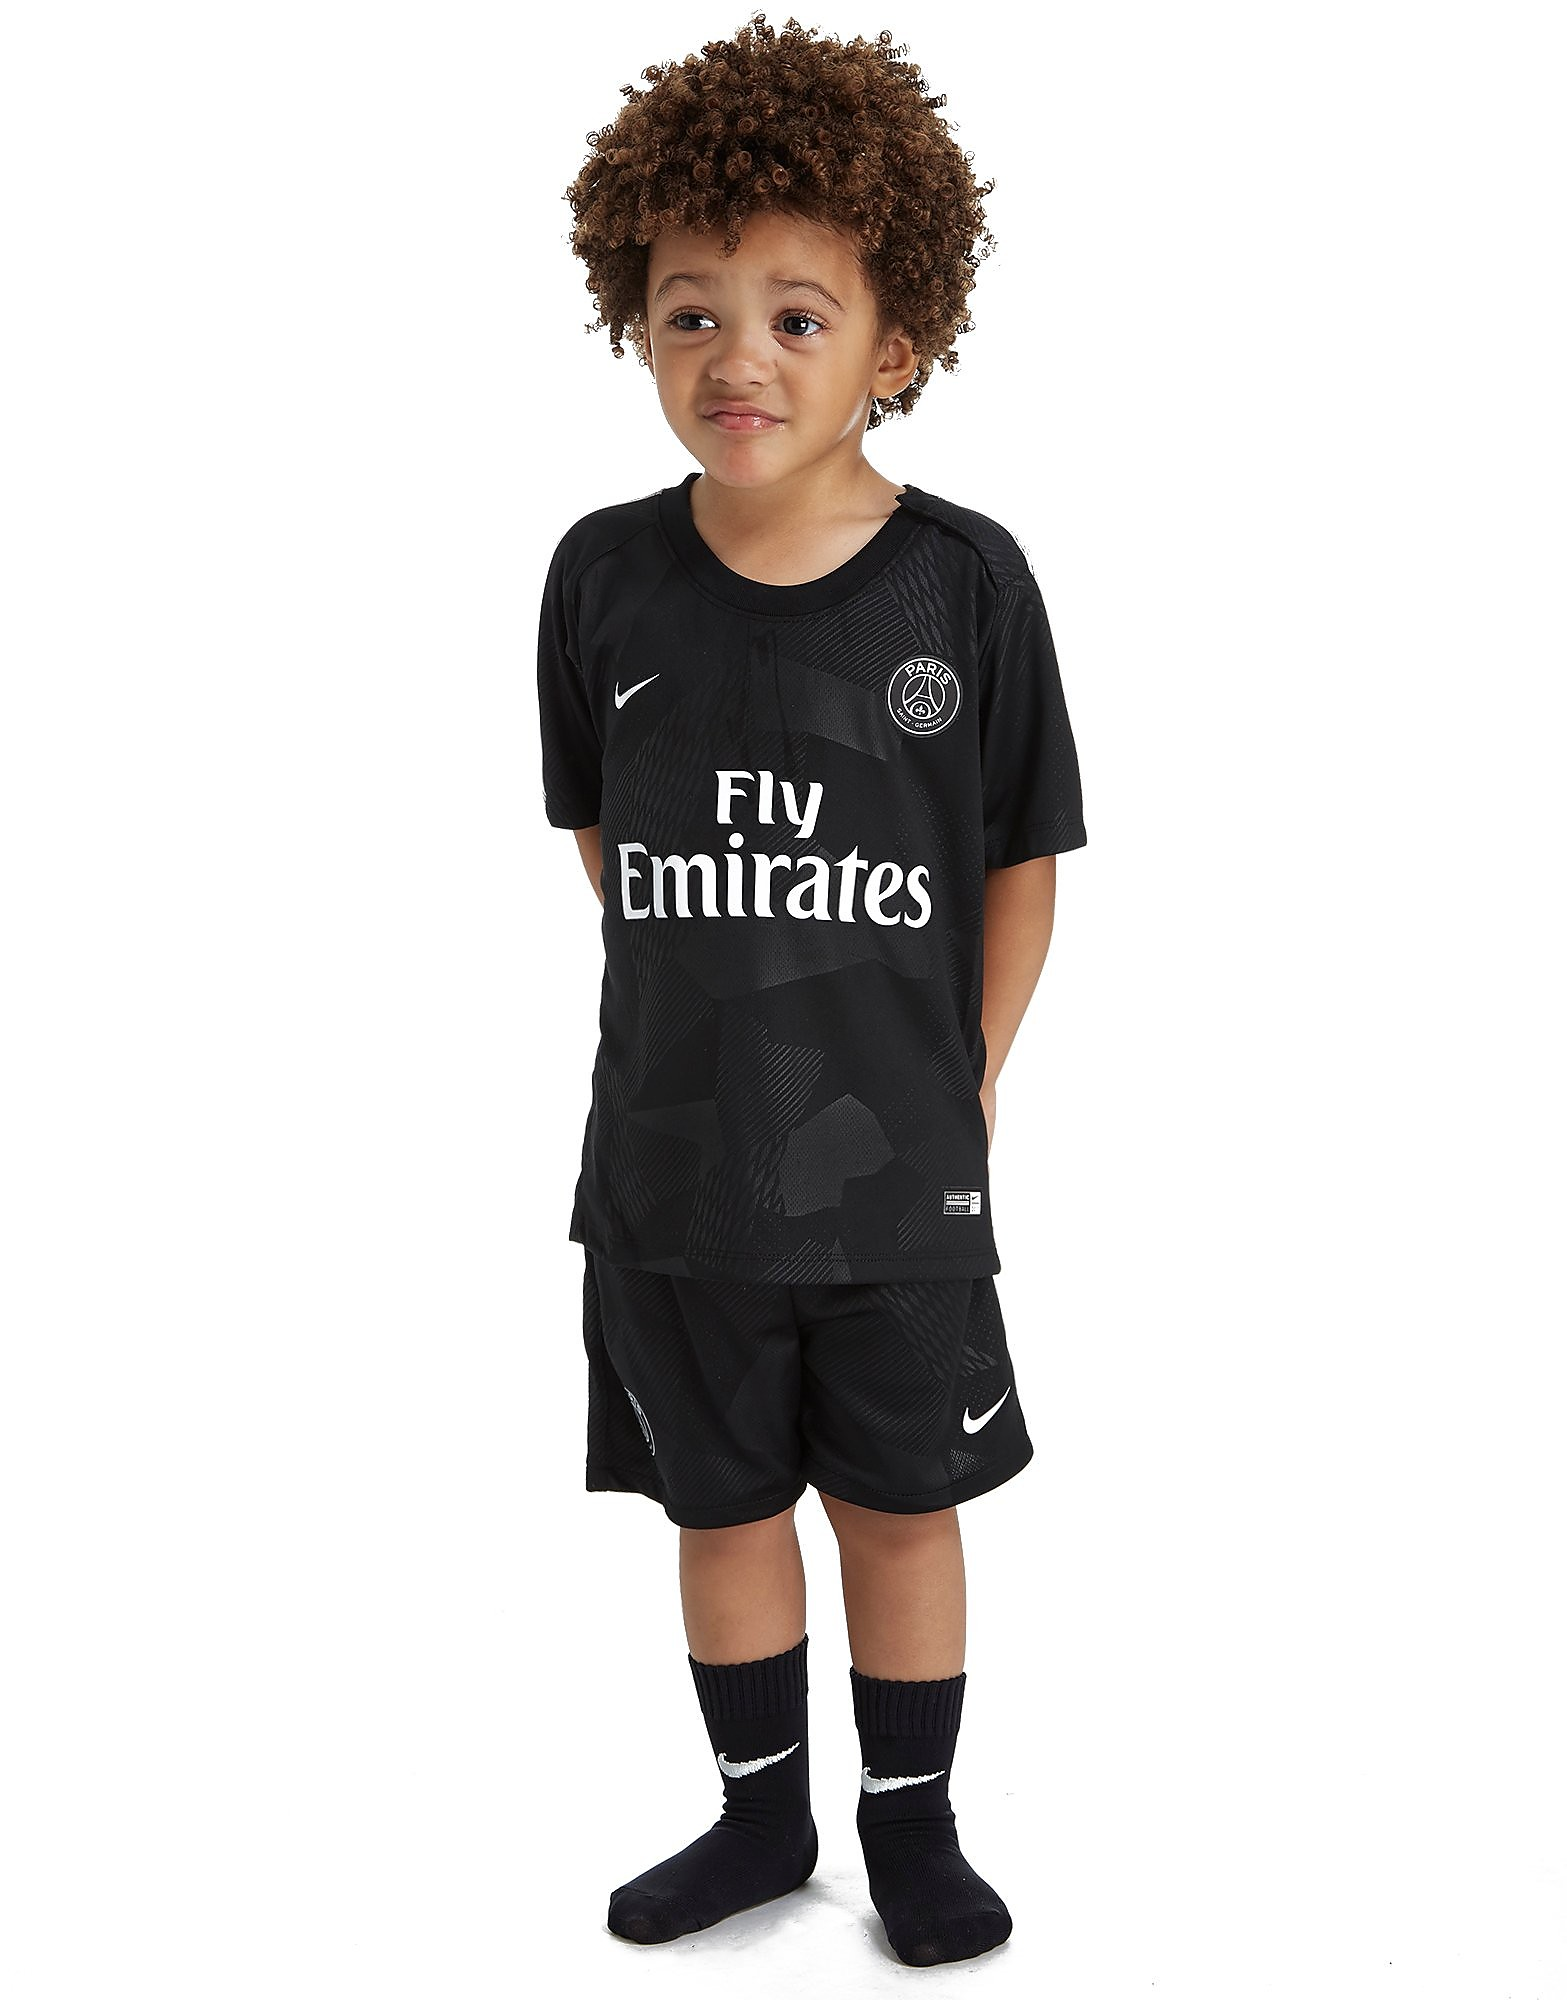 Nike Paris Saint Germain 2017/18 Third Kit Baby's